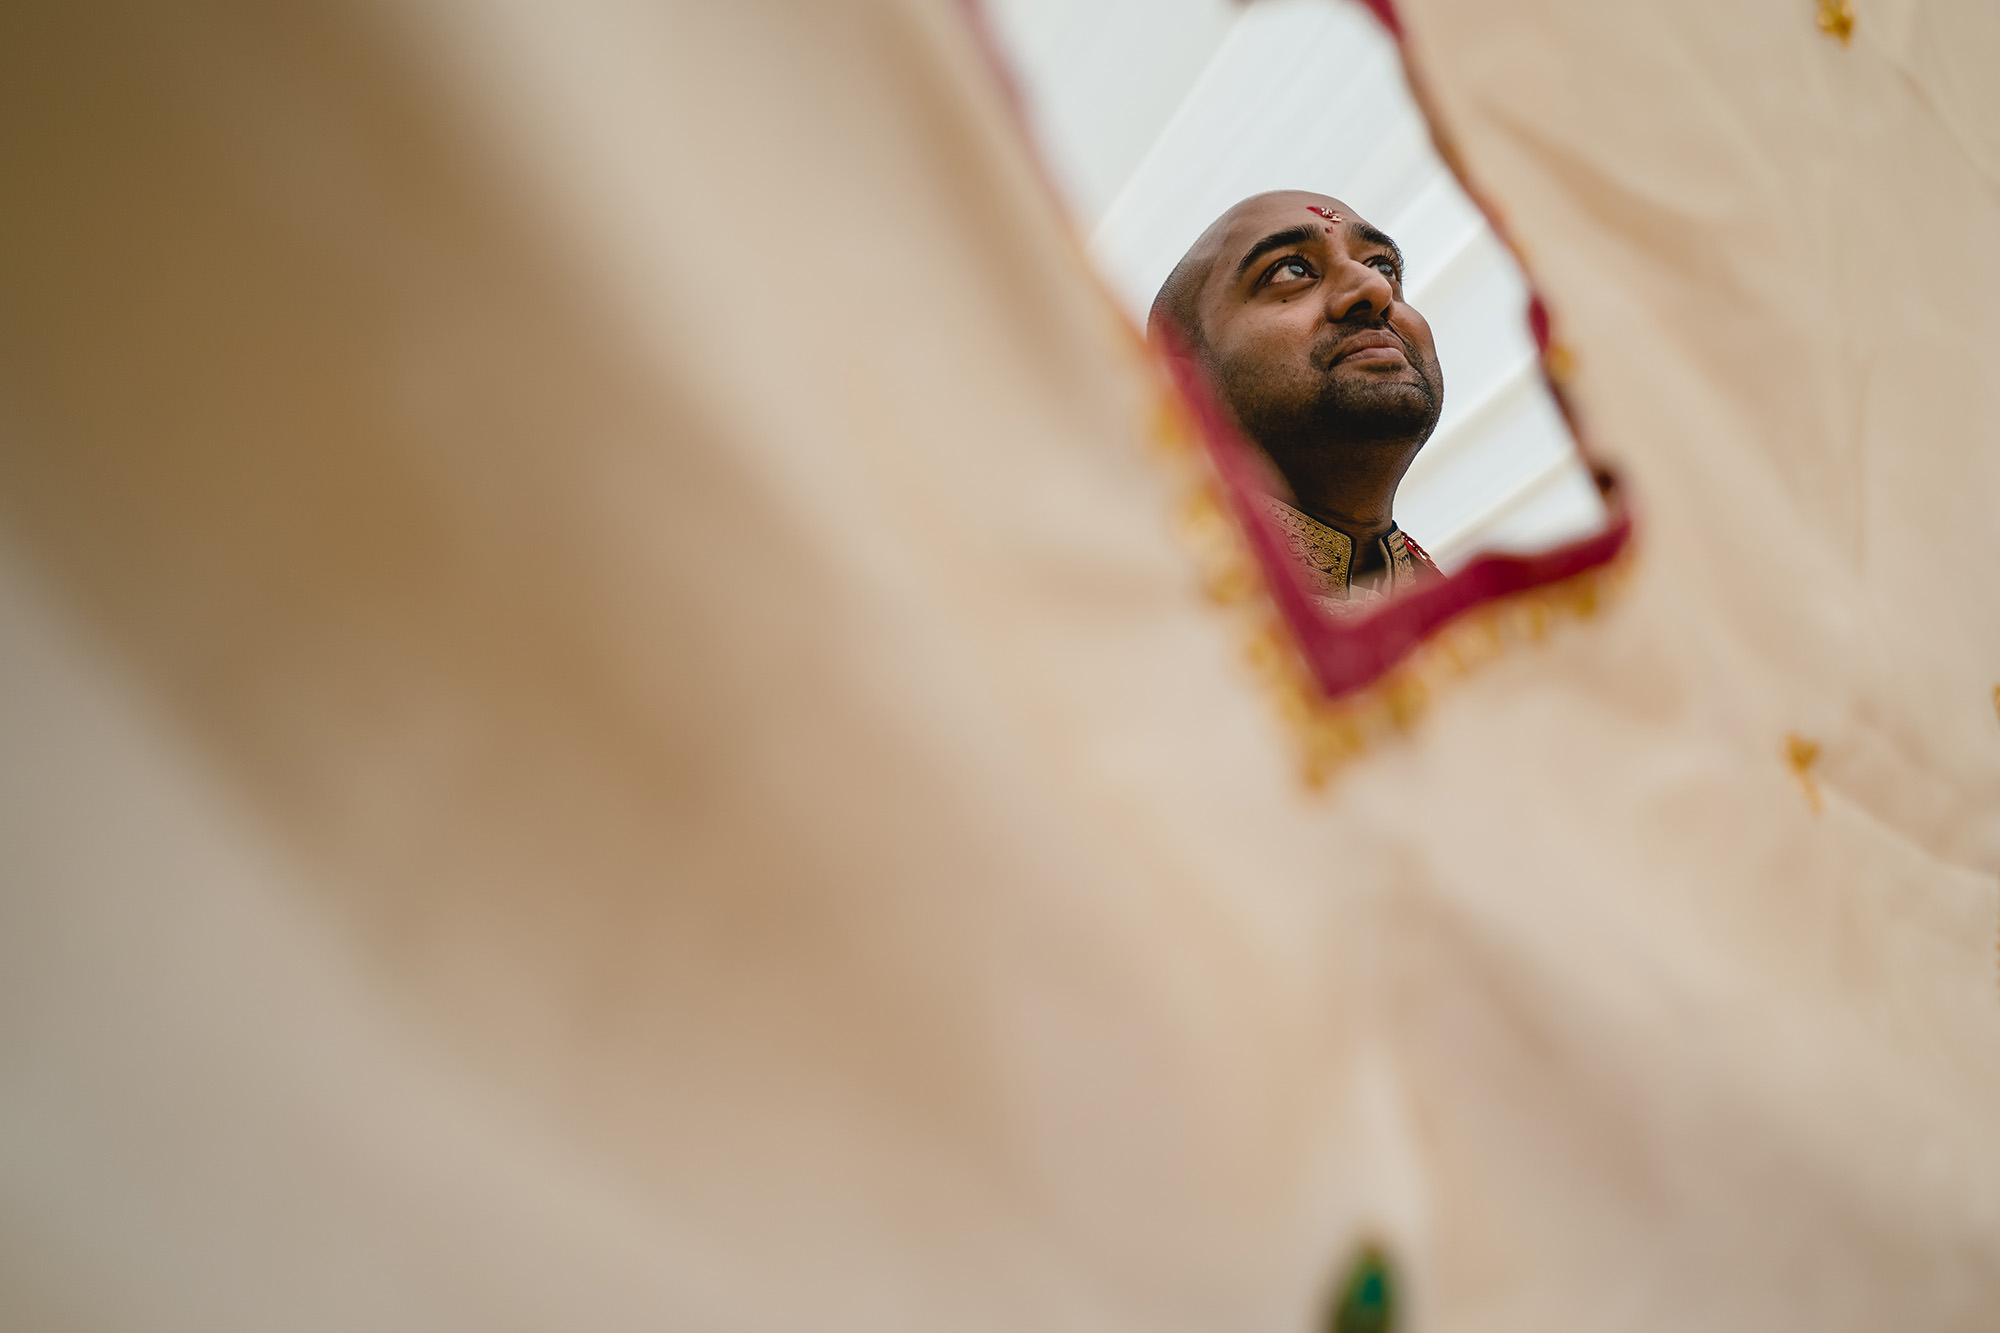 groom awaiting for bride to enter